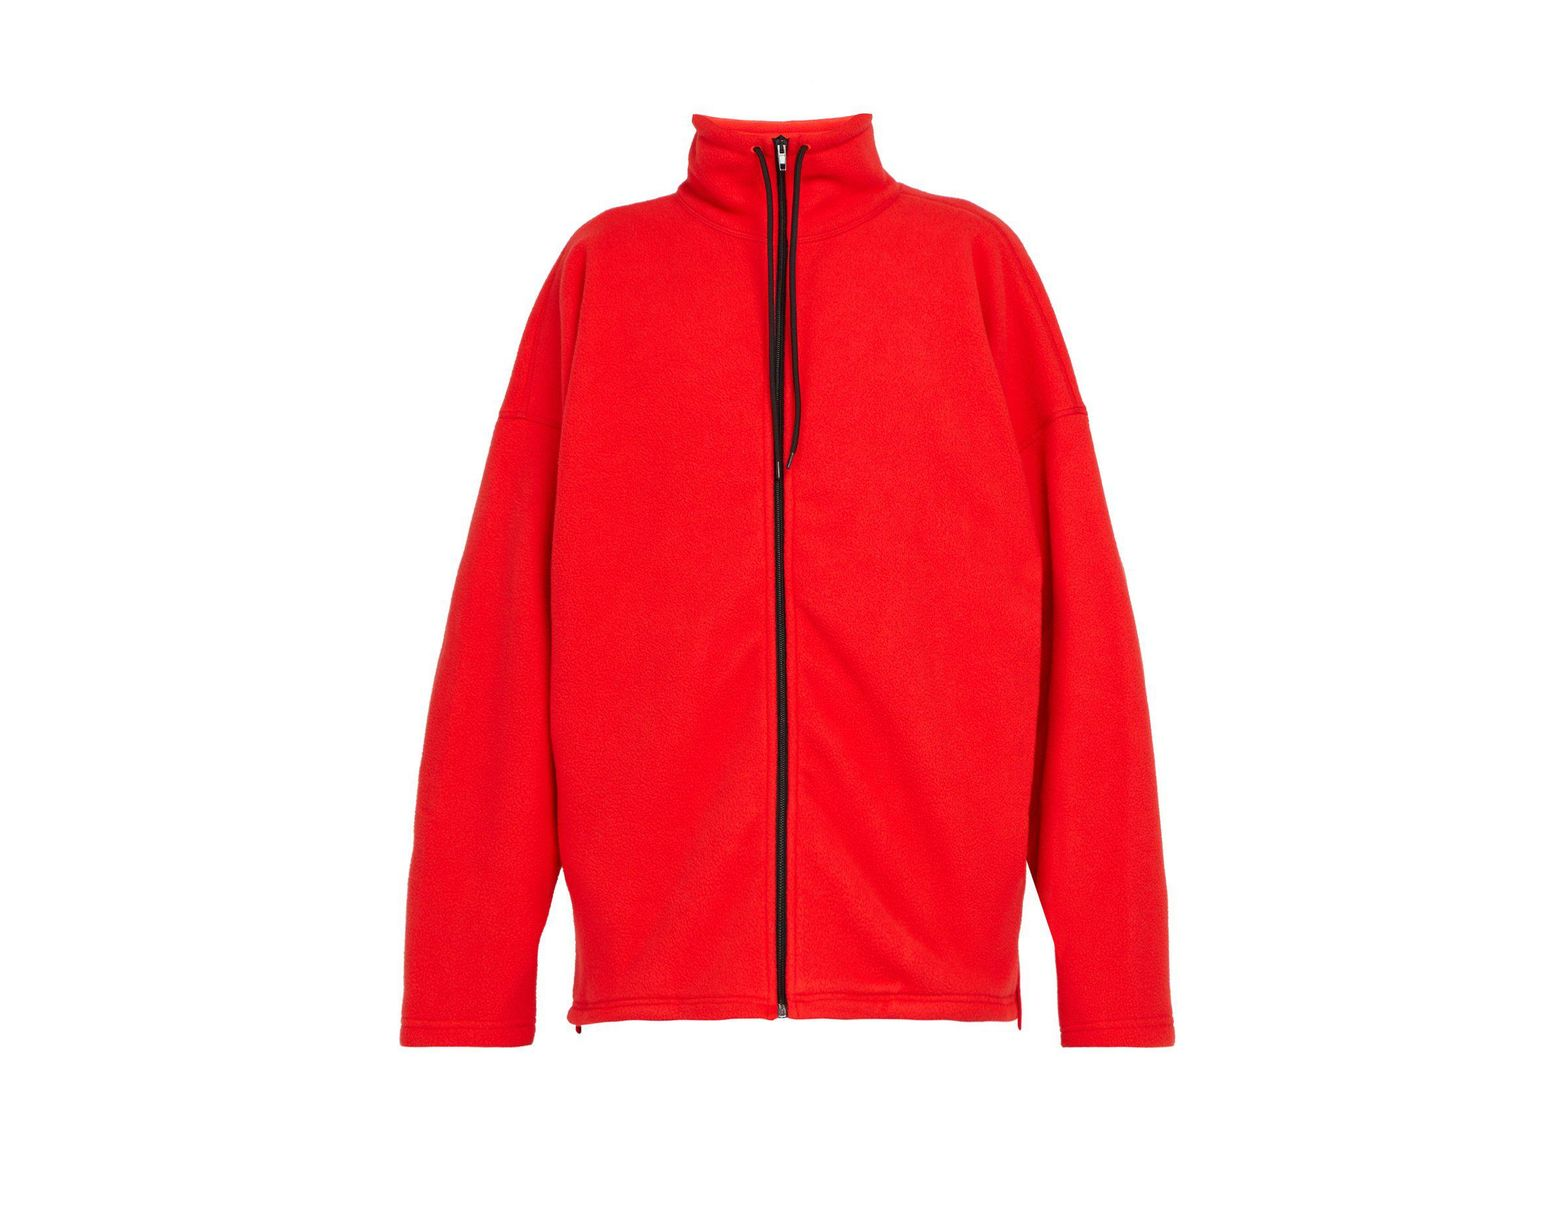 59c8eb53 Balenciaga Lgbtq+ Flag Embroidered Zip Through Track Top in Red for Men -  Lyst